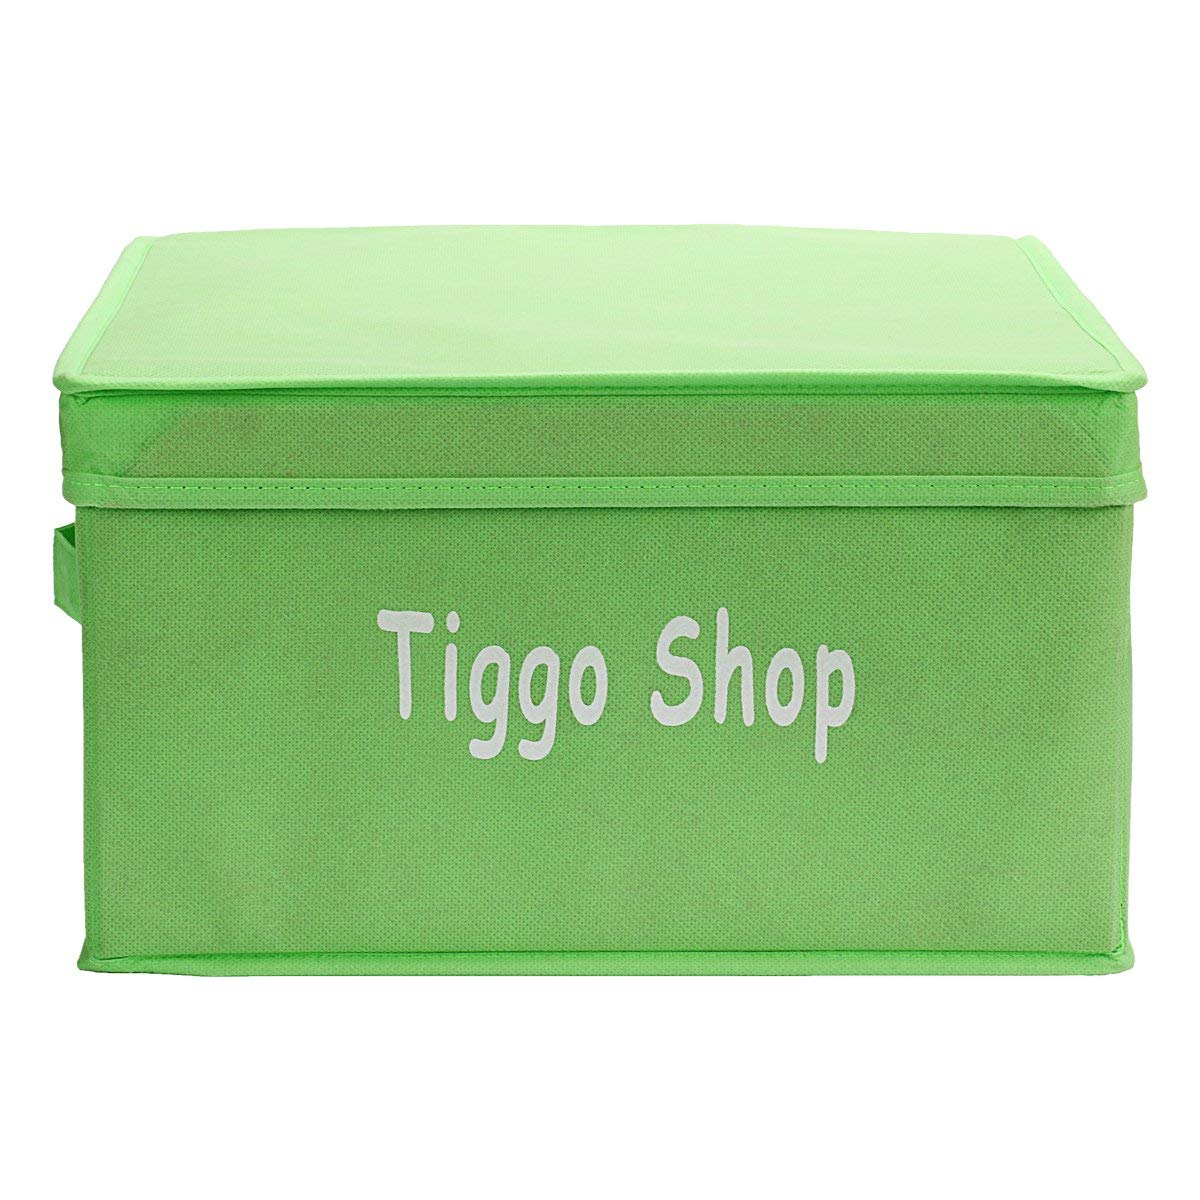 Tiggo Foldable Non-woven Storage Box/bins-collapsible Storage Trunk, Storage Bin with Lid, Toy Box, Light-weight Reusable Storage Cube Baskets with Portable Handles